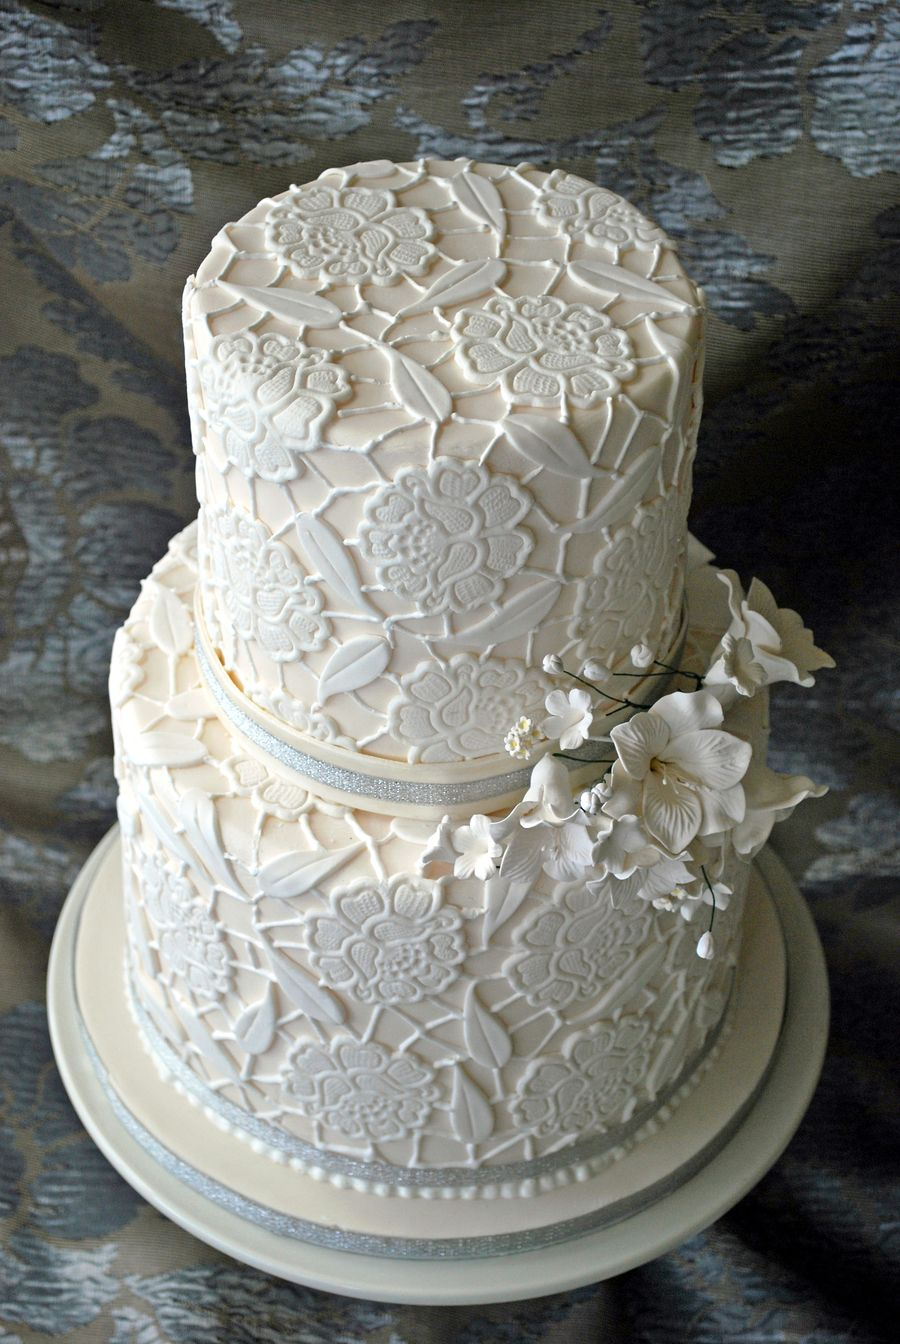 Two tier double layer wedding cake for lace i used рецепты